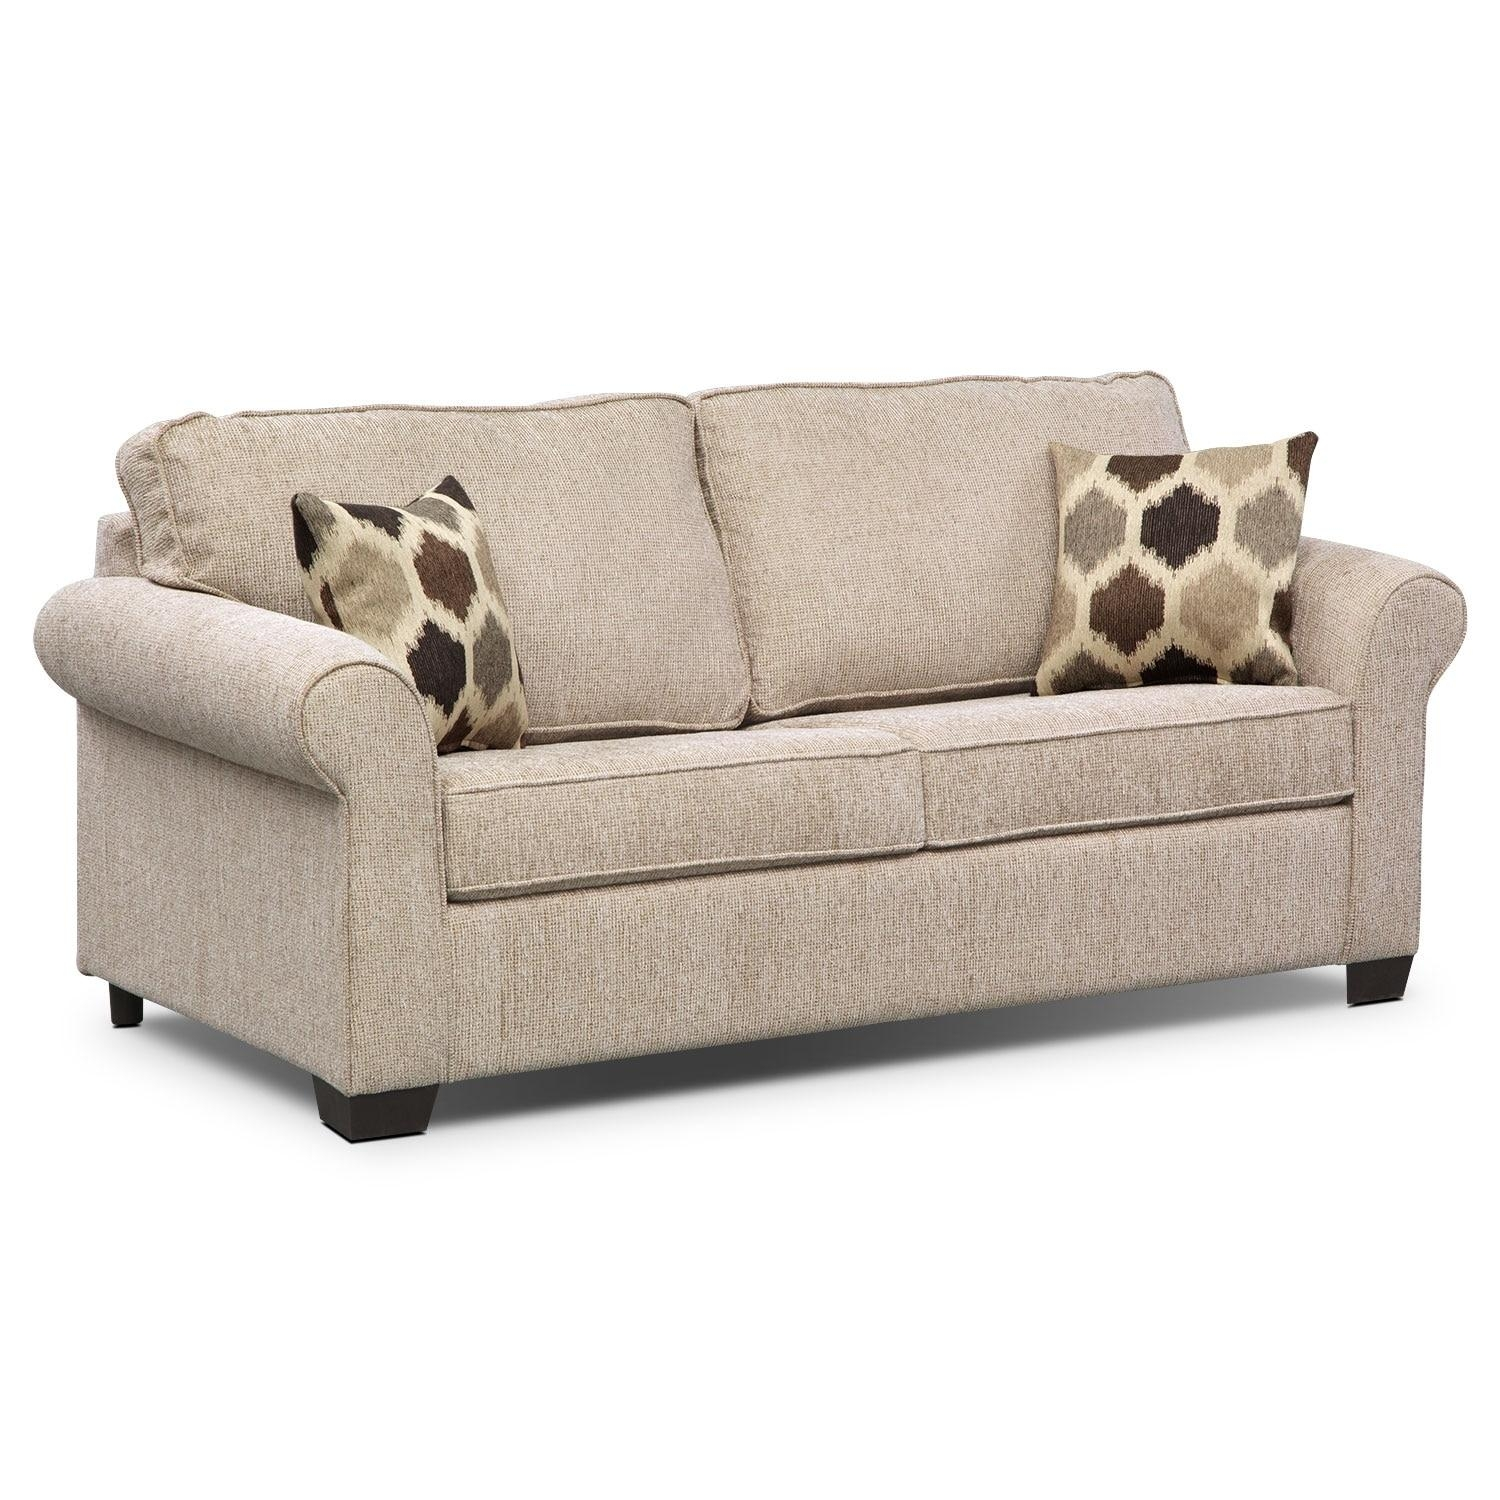 Sleeper Sofas | Value City Furniture | Value City Furniture With Full Size Sofa Sleepers (Image 13 of 21)